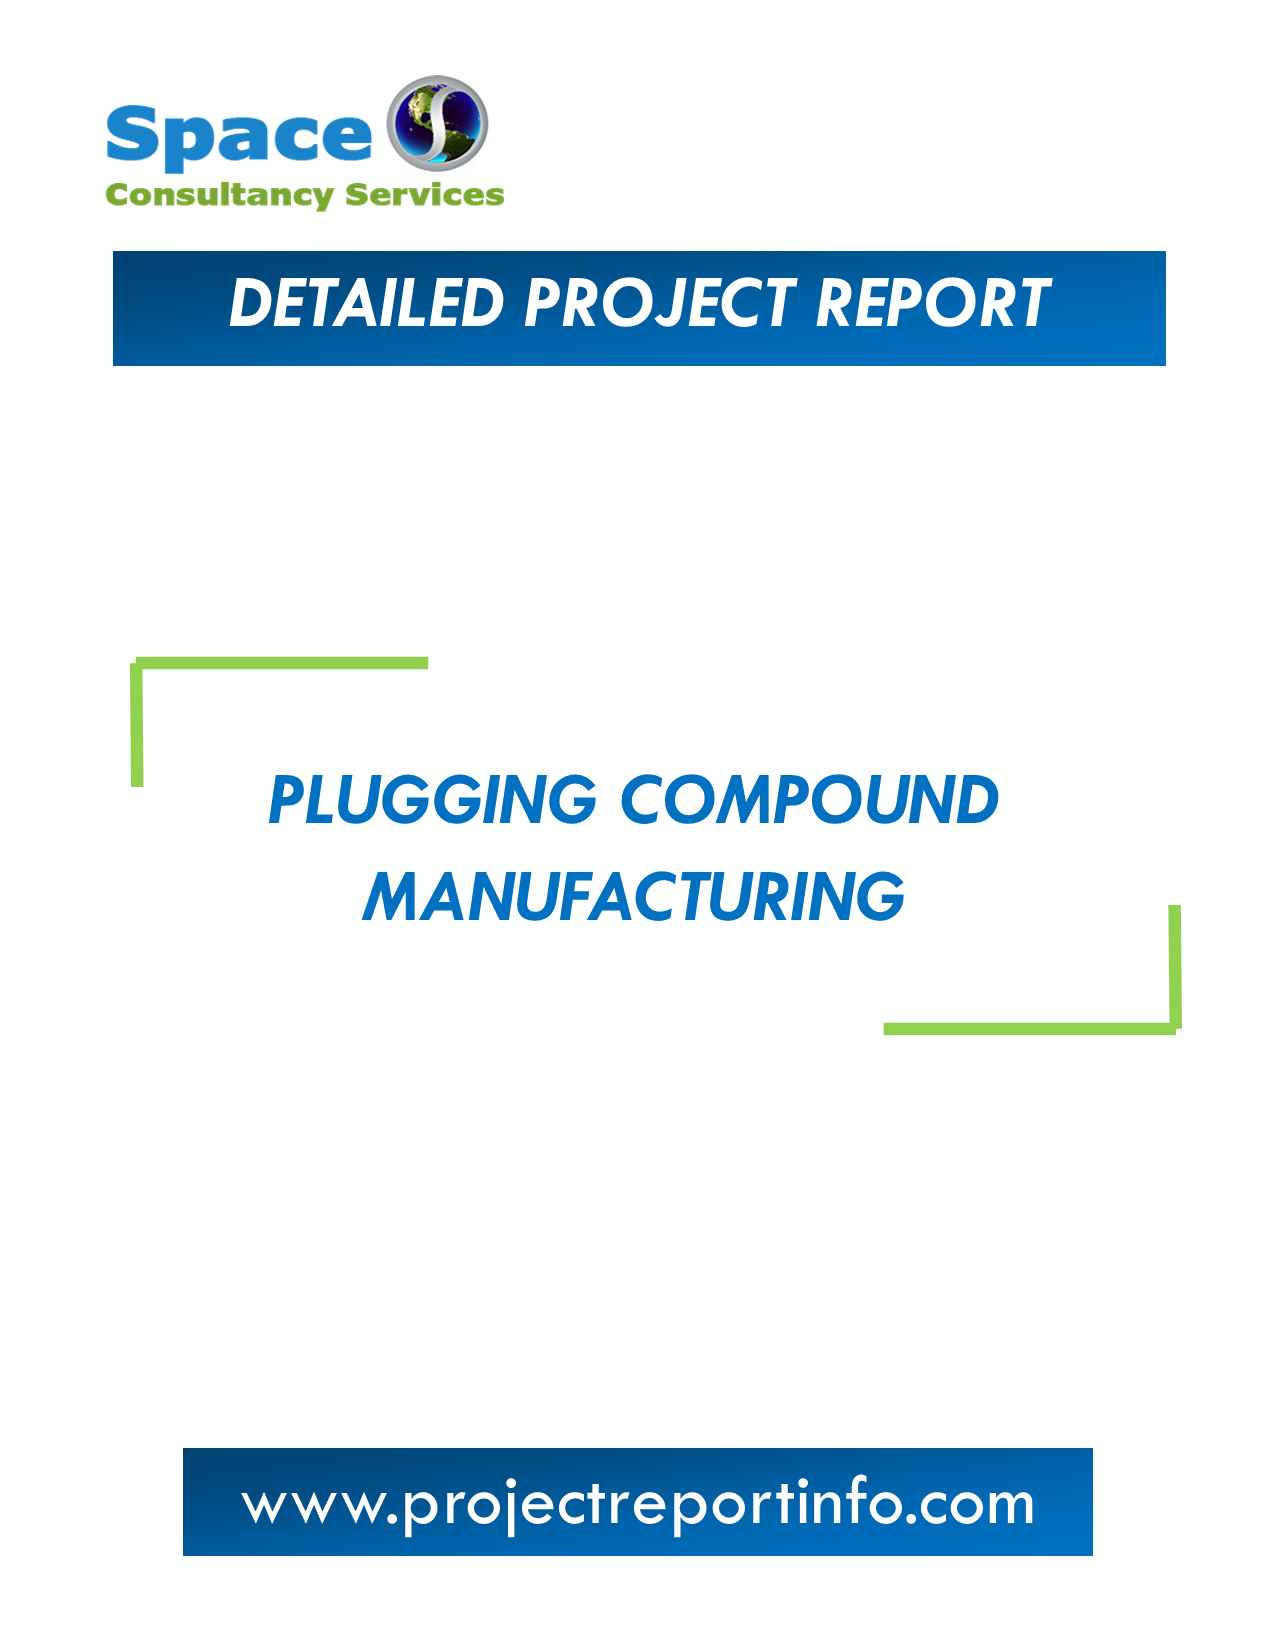 Project Report on Plugging Compound Manufacturing